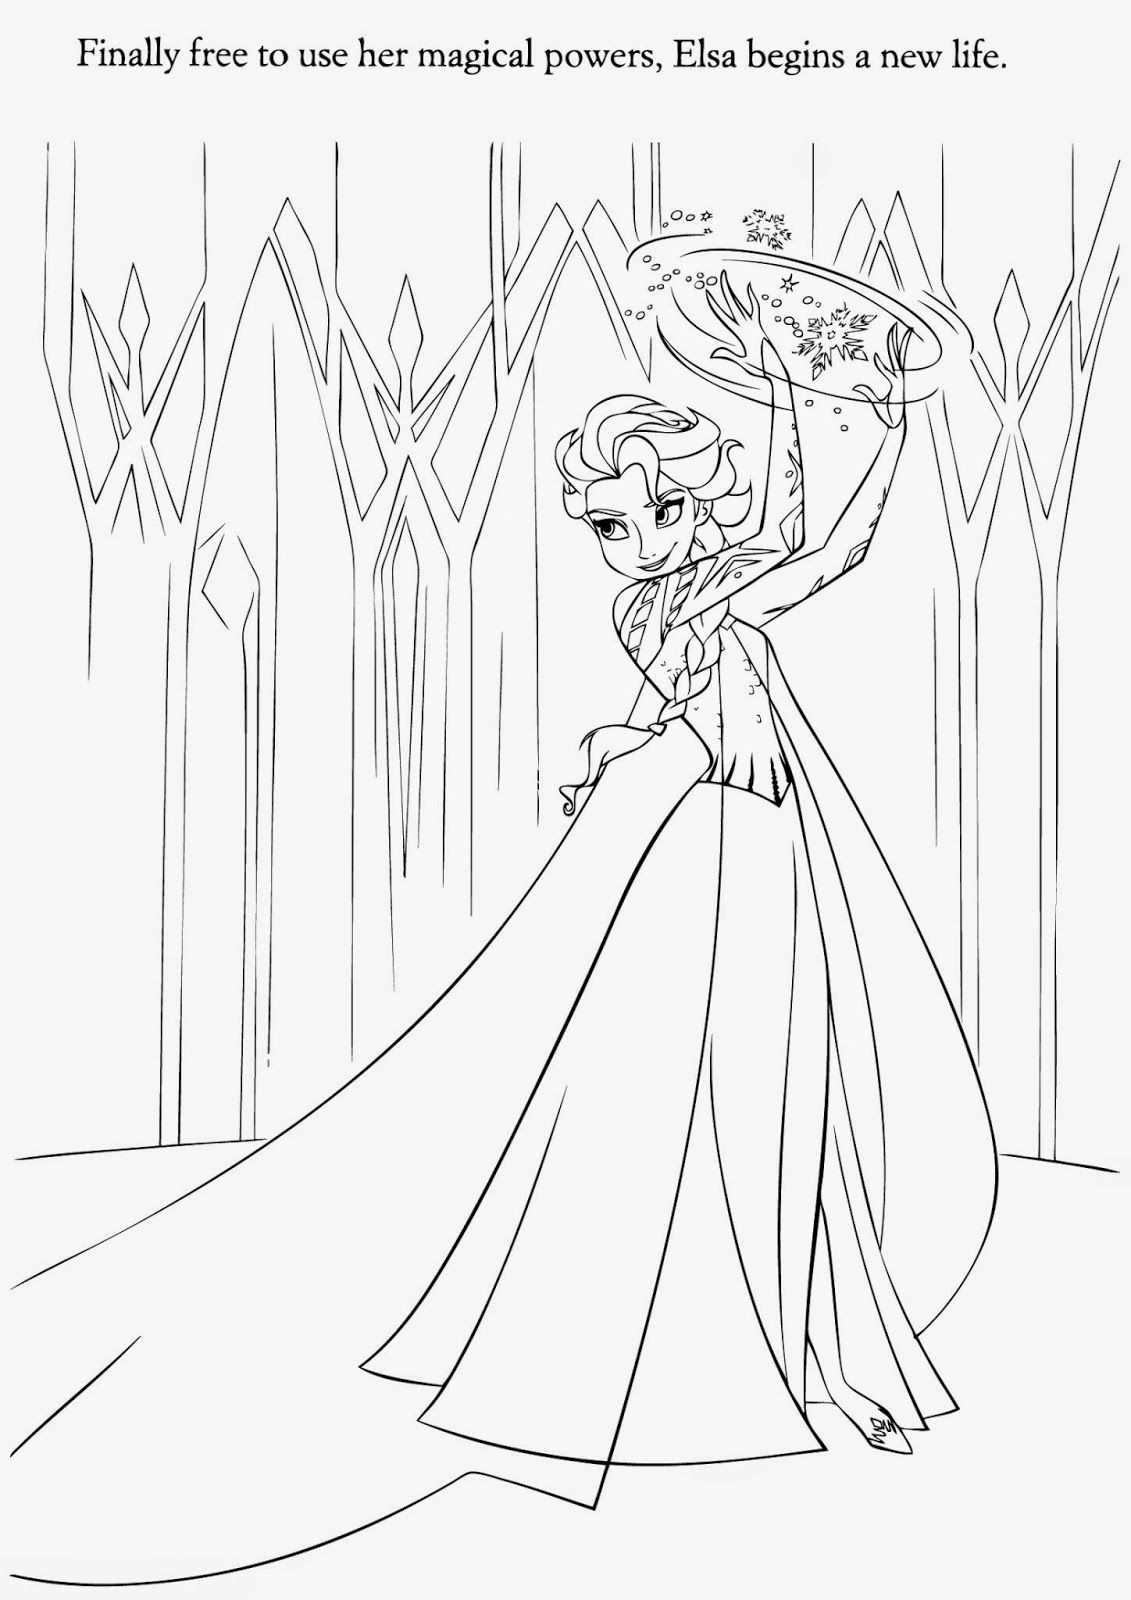 Free coloring in pages frozen - Elsa Frozen Coloring Pages Printable Elsa Frozen Coloring Pages Free Elsa Frozen Coloring Pages